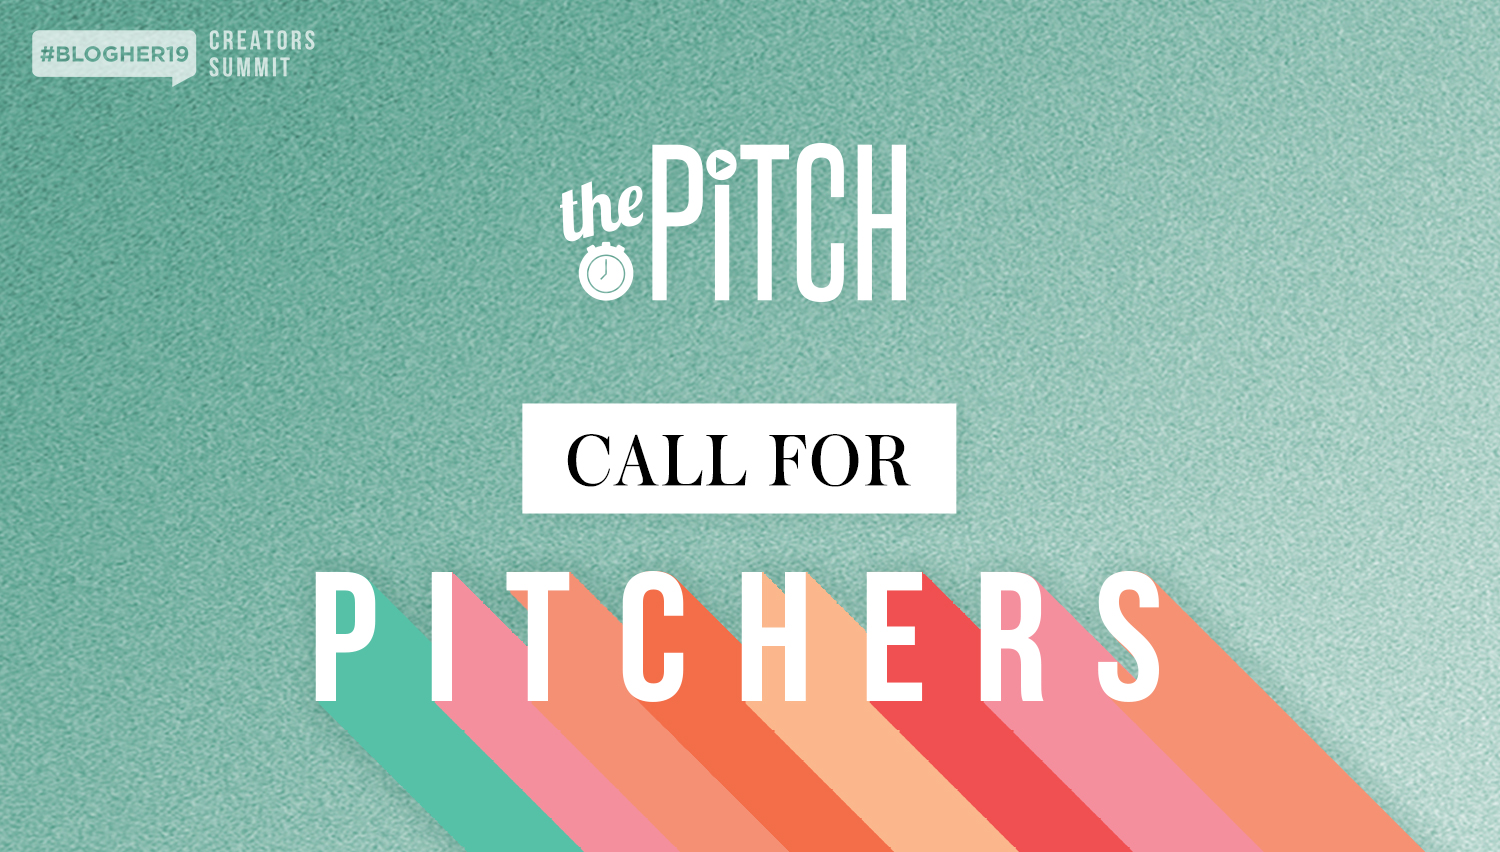 apply to be a pitcher - #BlogHer19 Creators Summit is seeking up-and-coming female entrepreneurs in the New York area to compete in an onstage pitch competition. Read on to learn how to apply!